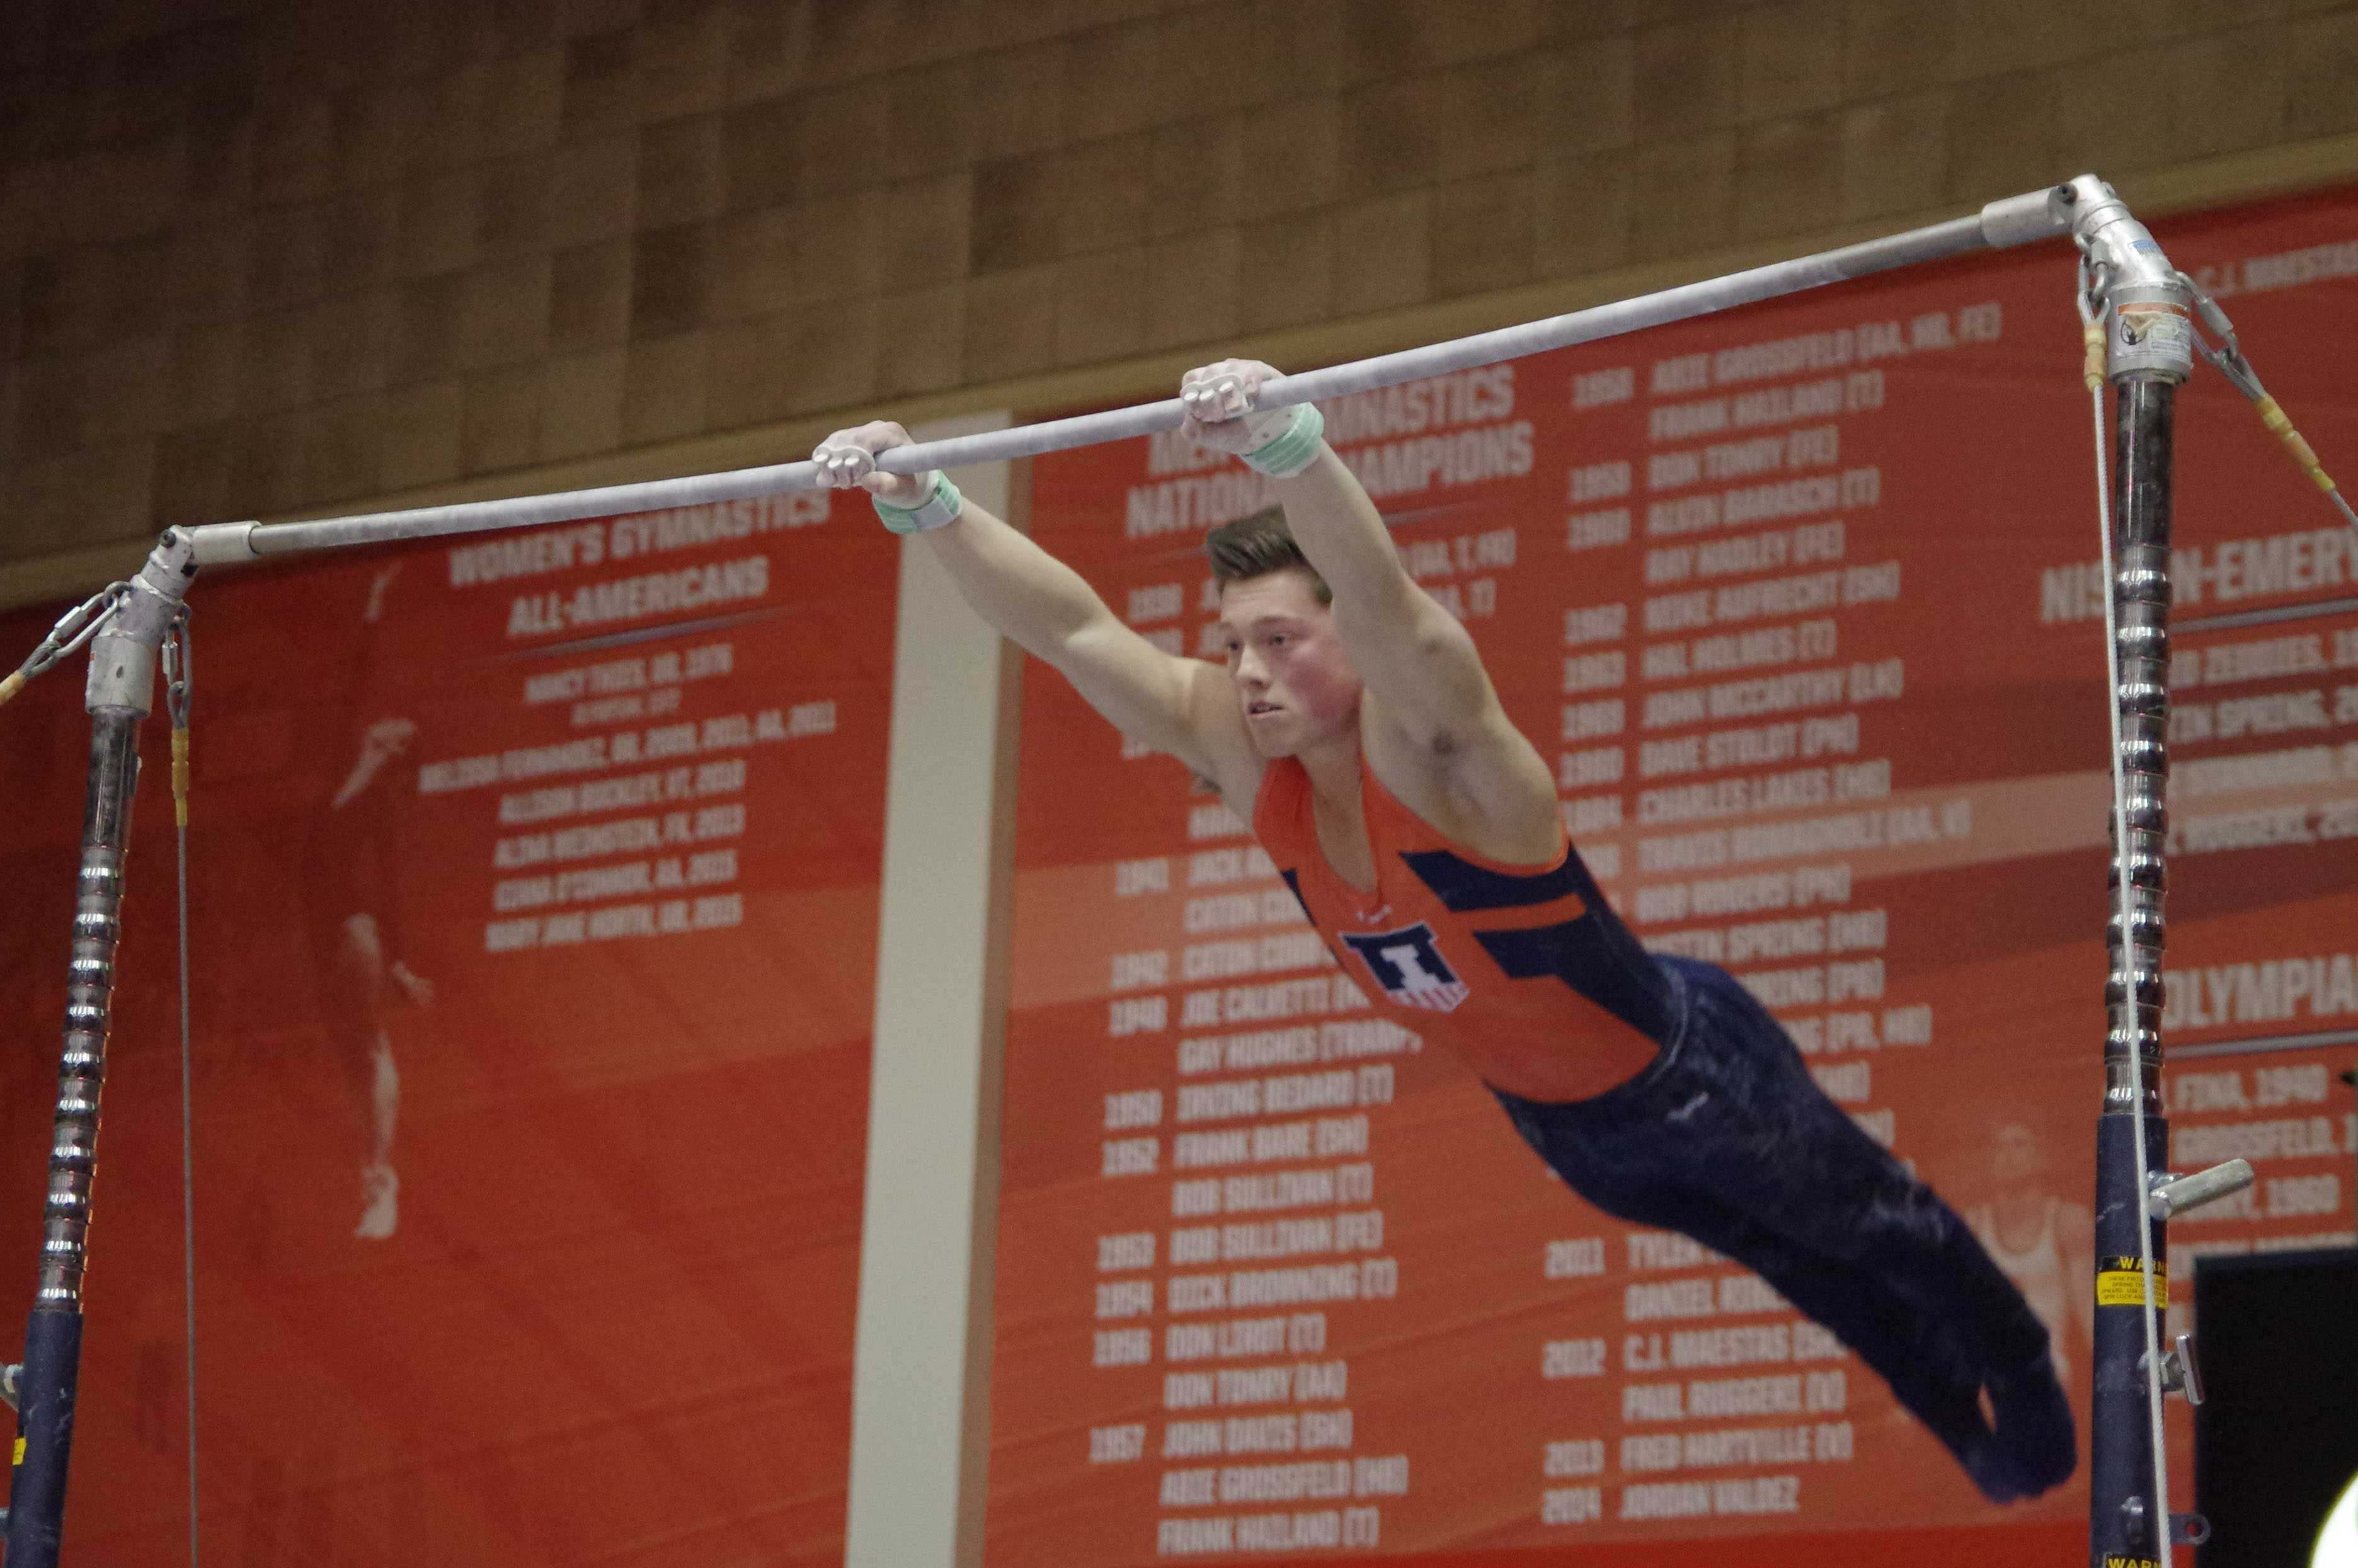 Illinois' Alex Diab performs his routine at the meet against Michigan on March 12, 2016.